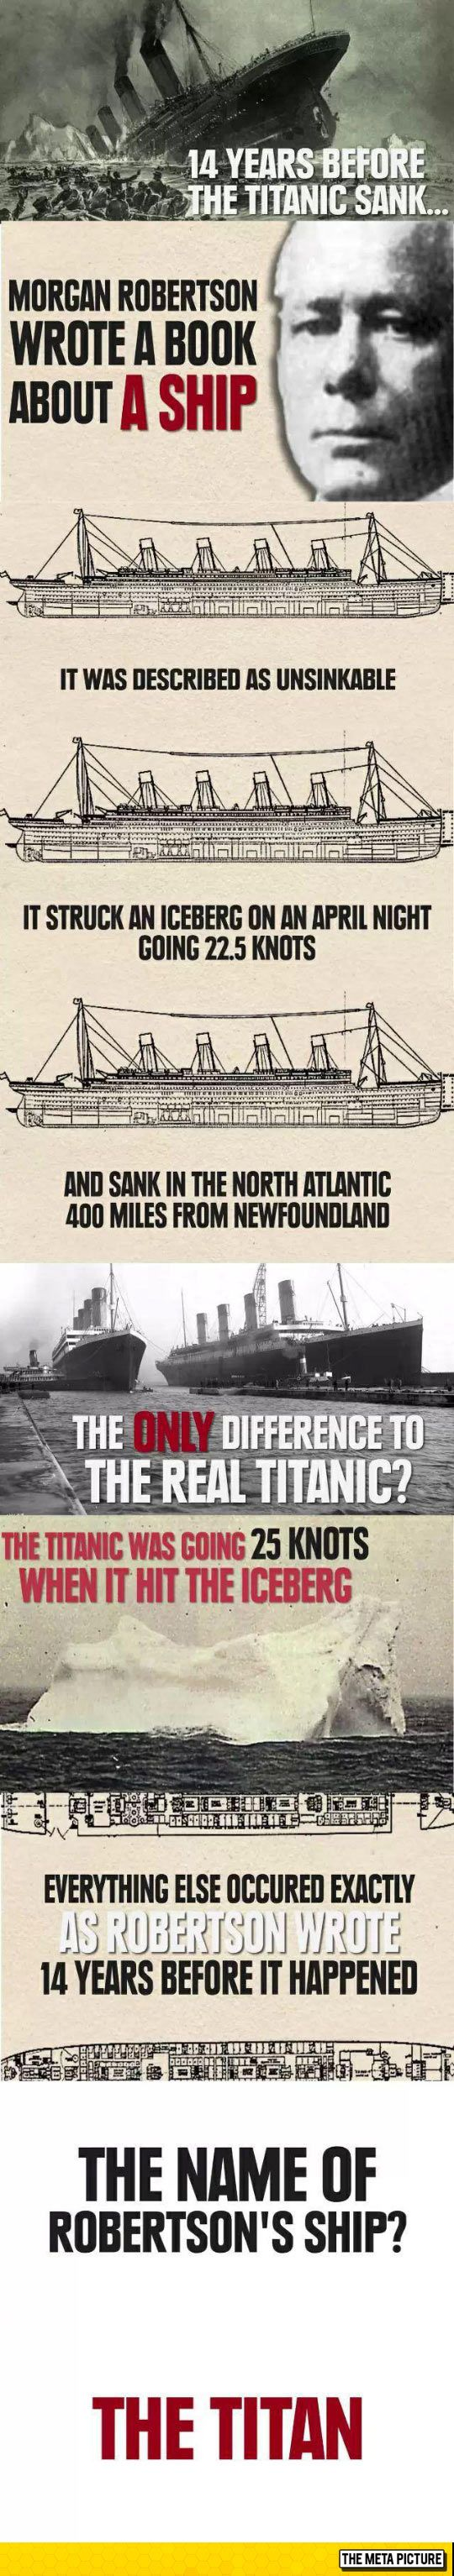 Idk if this is true or not, but if so, it makes u think for a second that the Titanic might have been sabotaged and sunk on purpose. But ive talked myself out of that conclusion